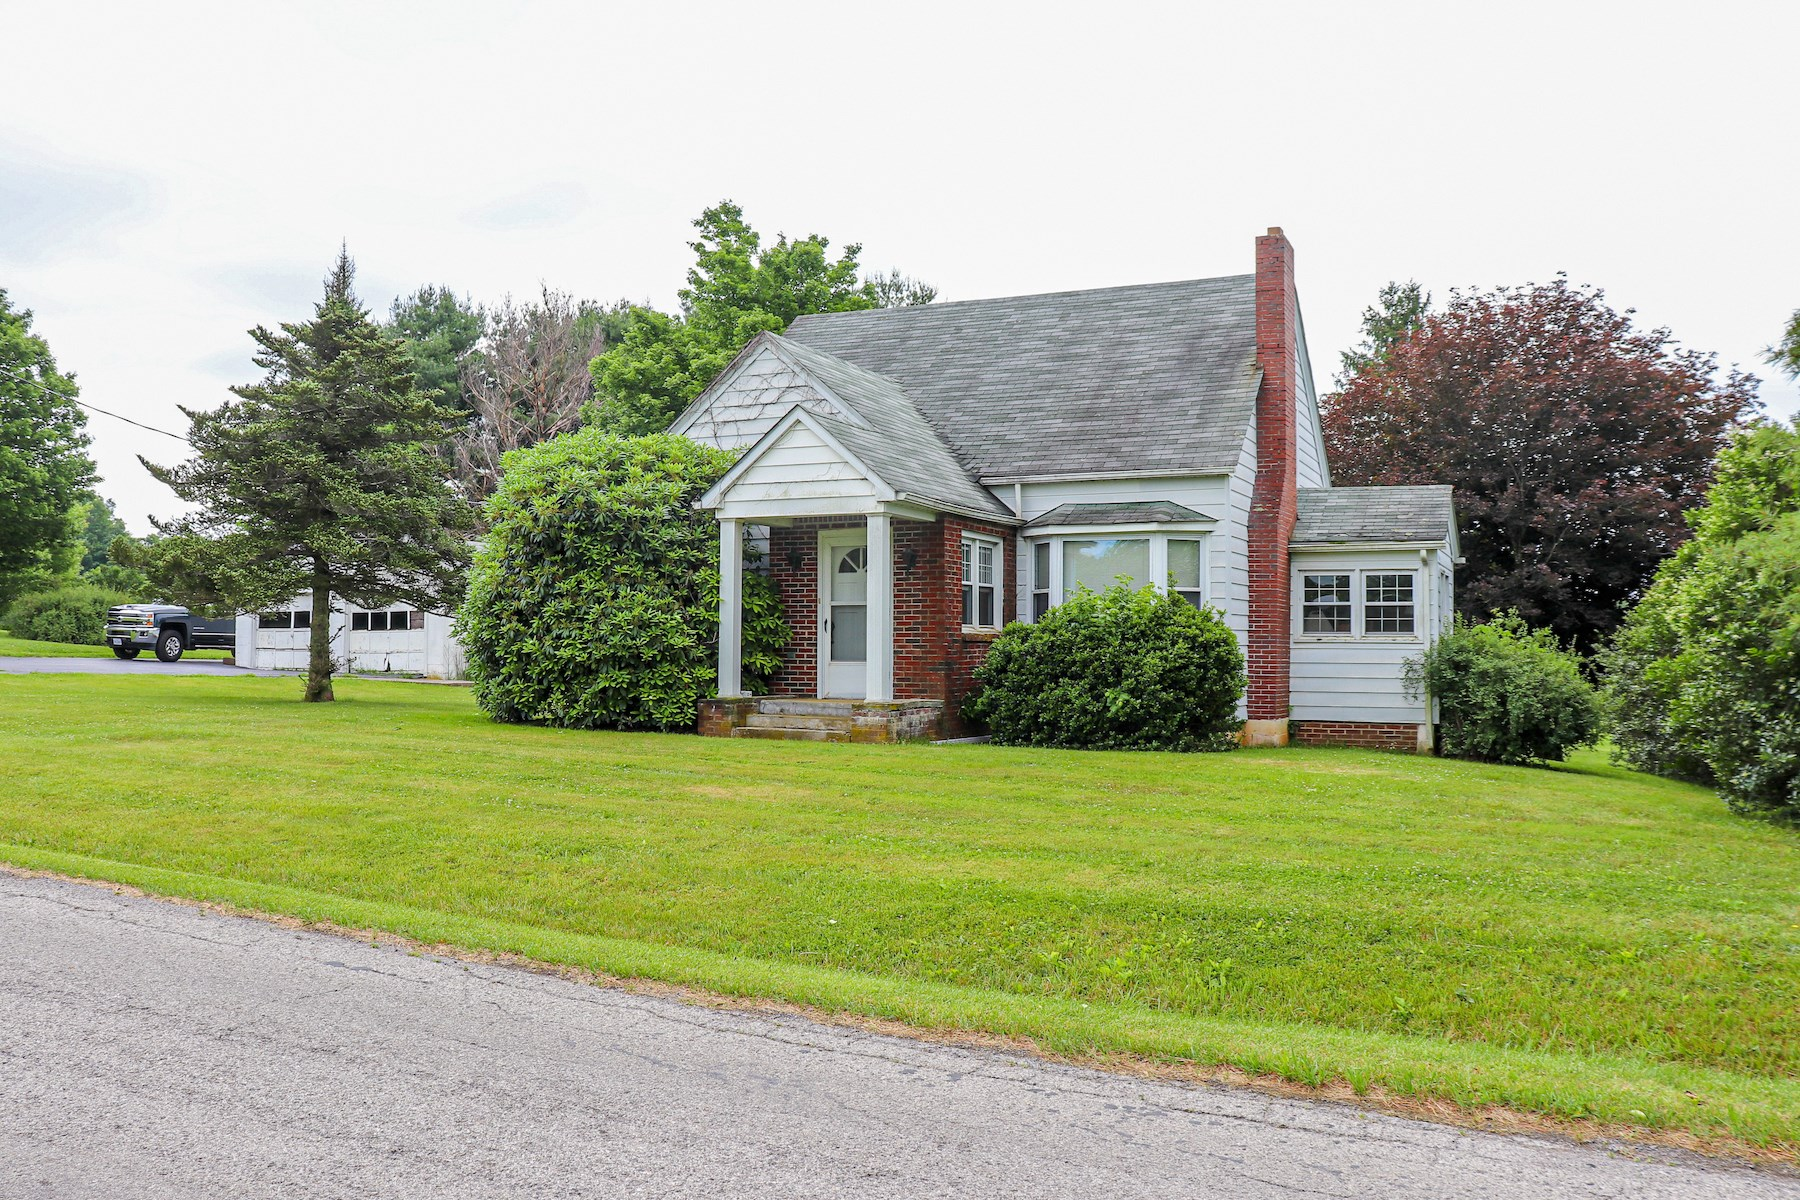 Sweet Country Home for Sale in Check VA! - VA Real Estate